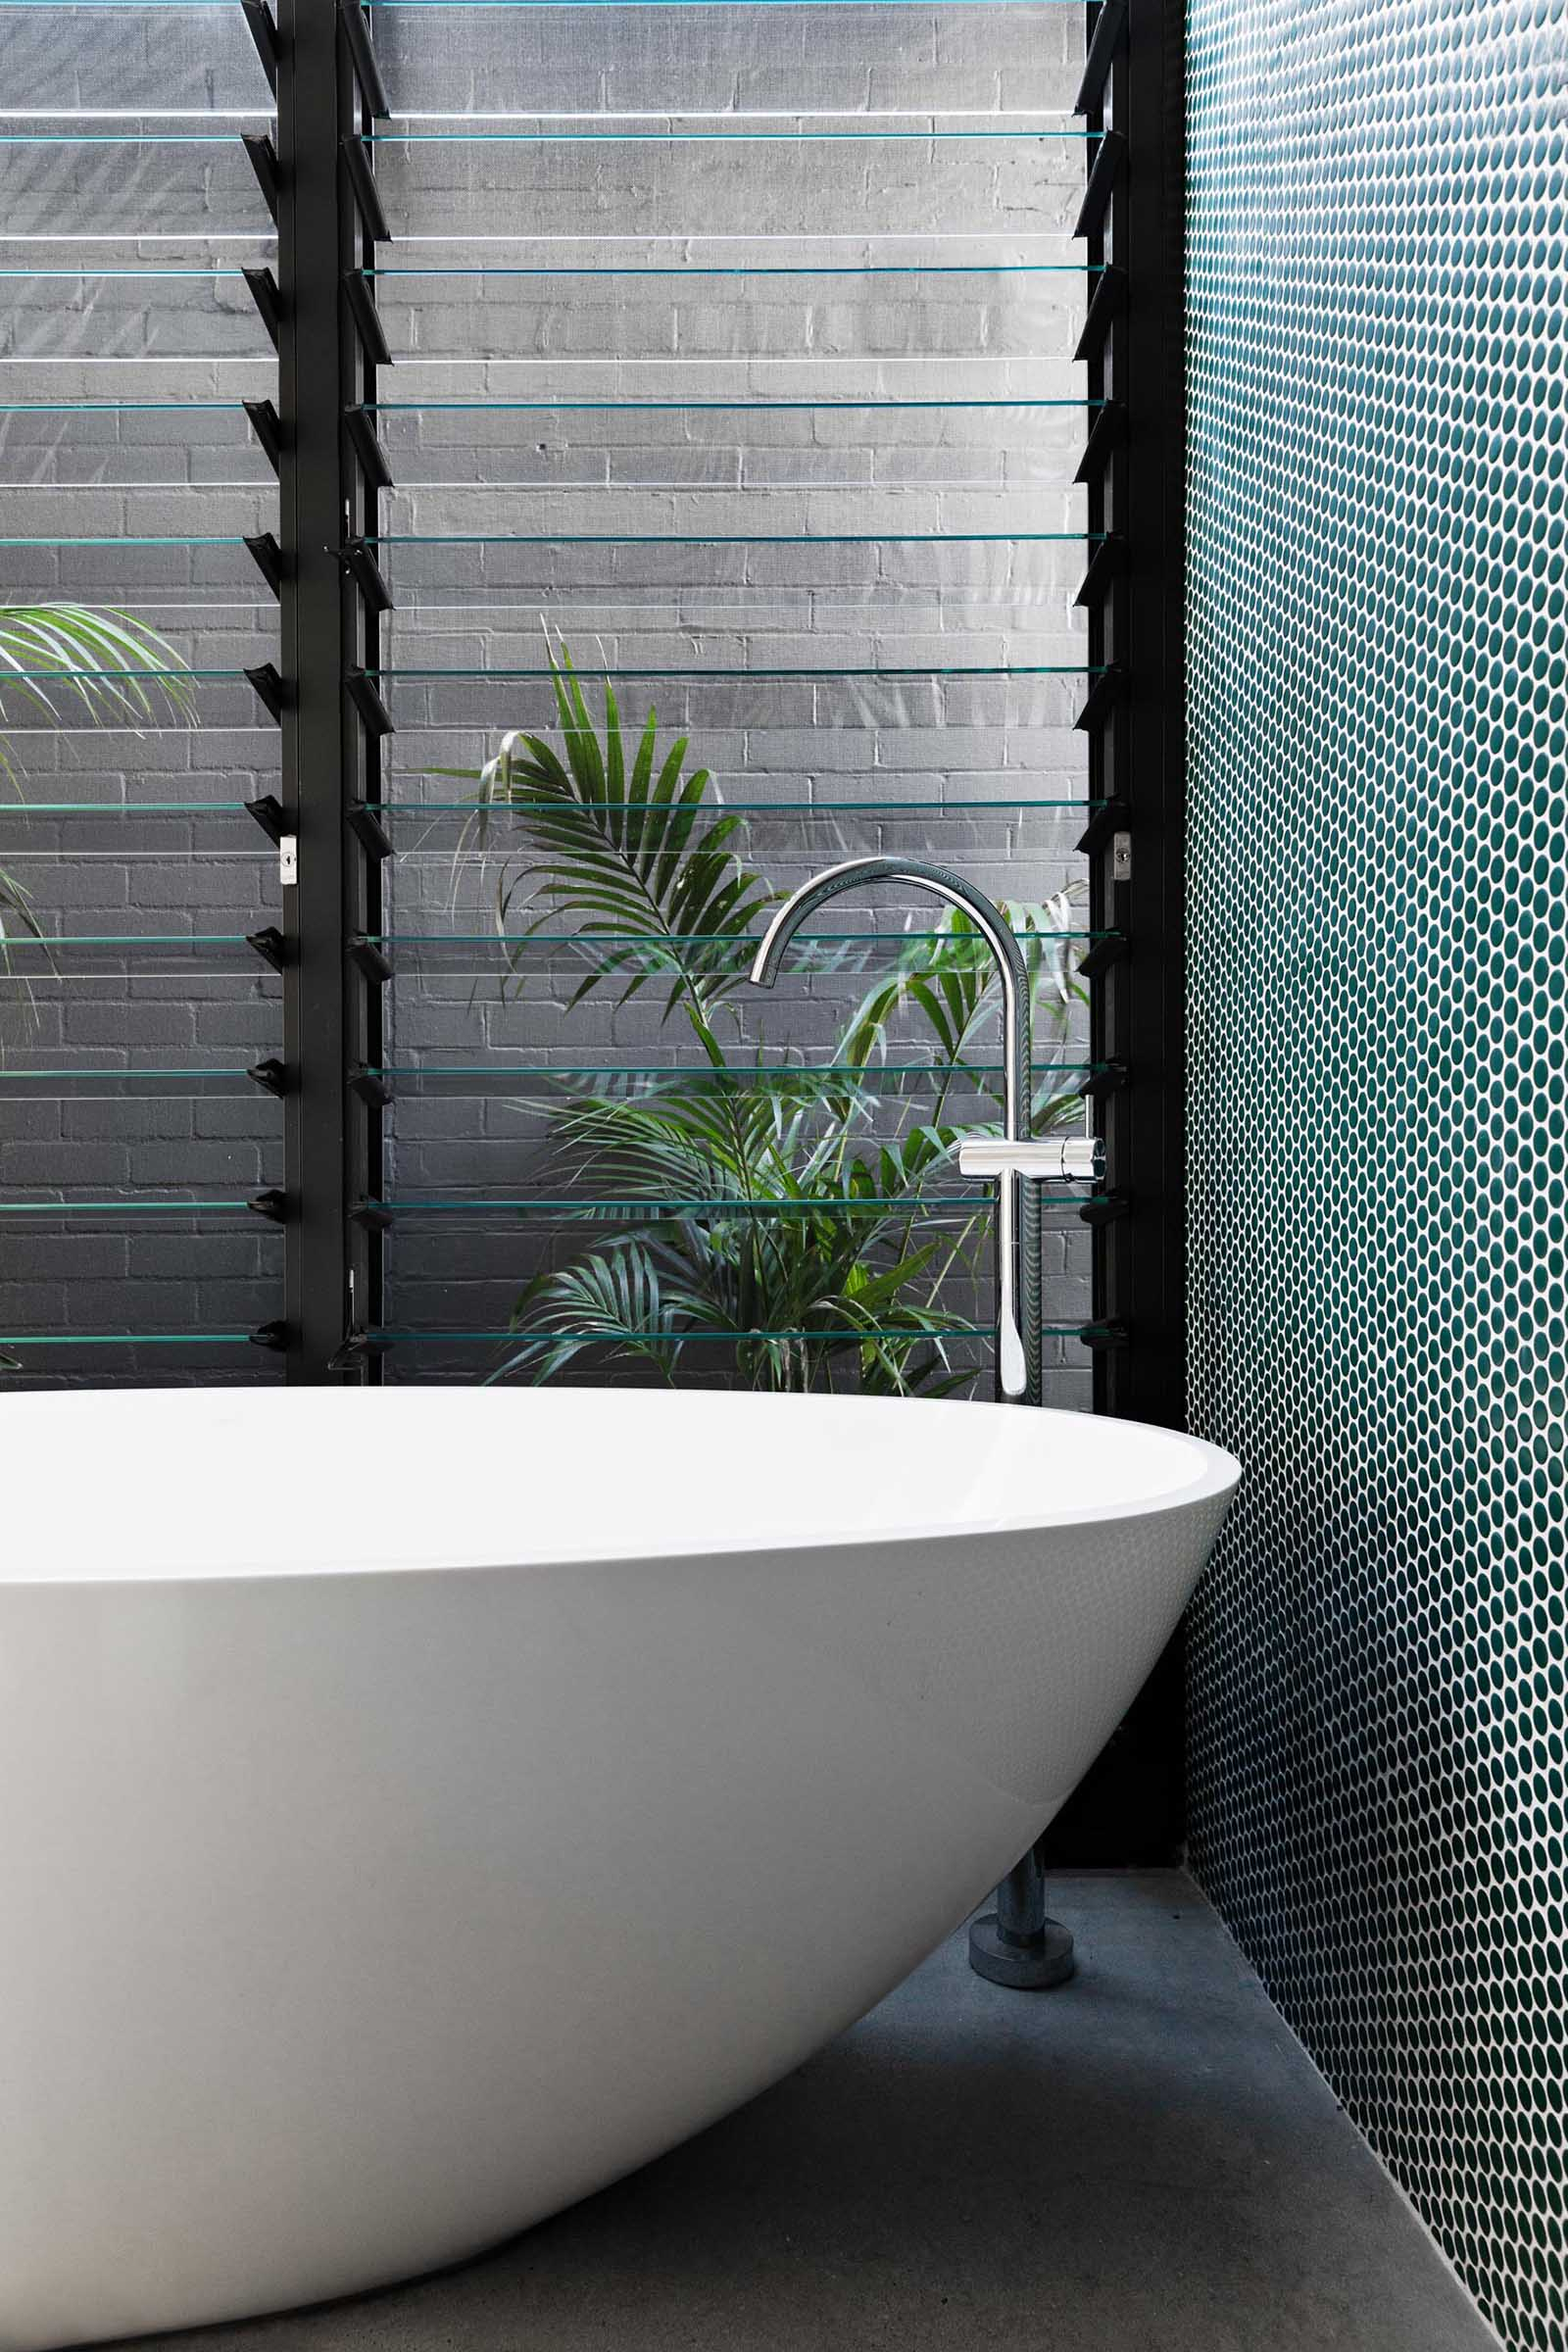 A modern bathroom with green penny tile accent wall, freestanding bathtub, and louvre windows.